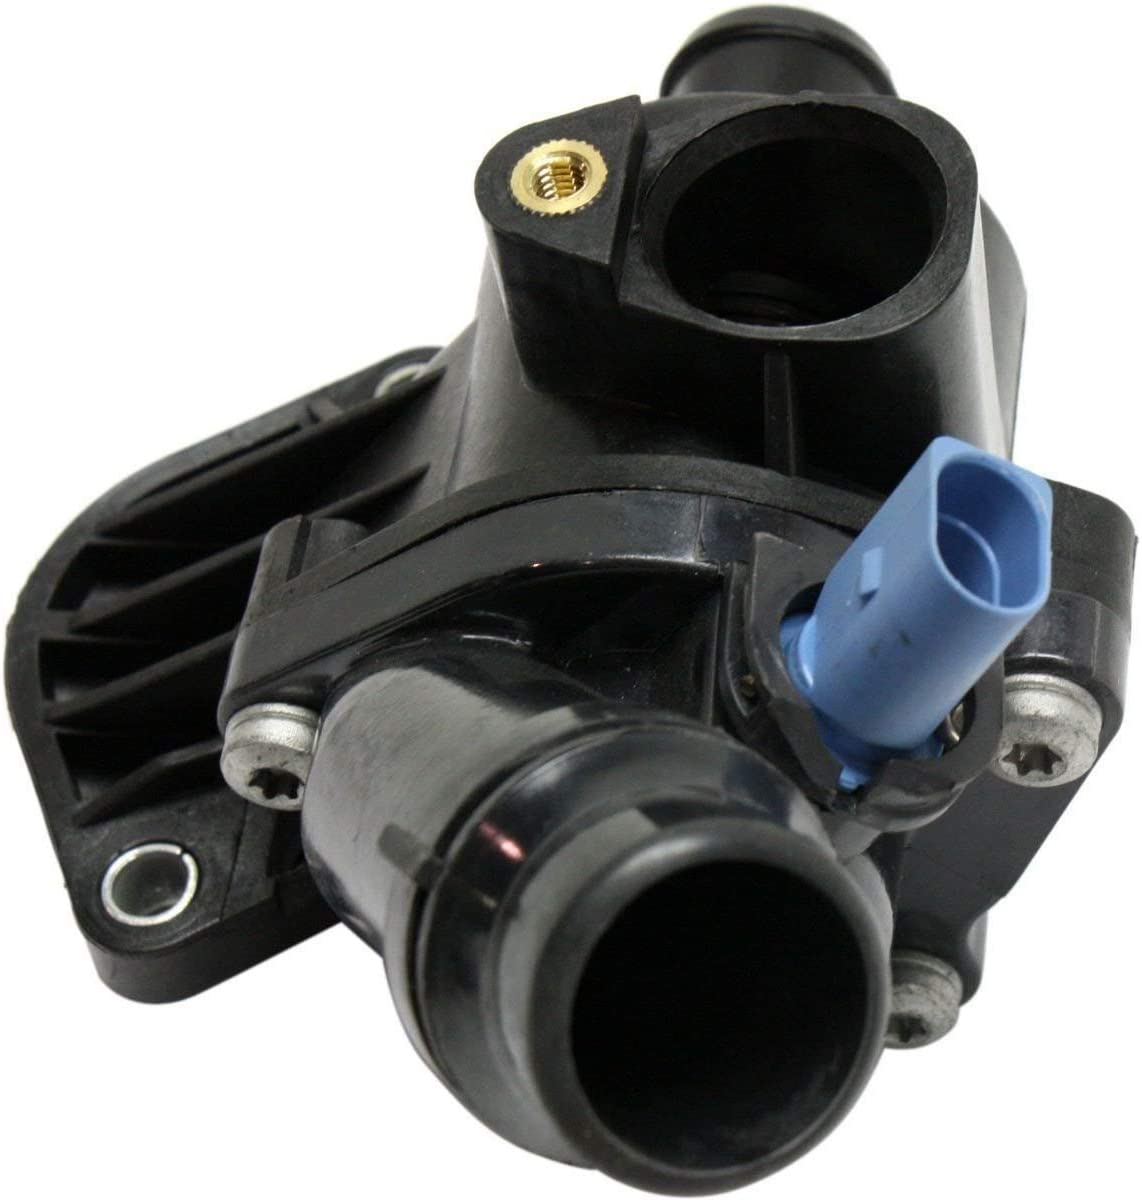 OCPTY Thermostat Housing Assembly Engine Coolant Thermostat Housing Assembly Fit For 2005 2006 2007 2008 Audi A4,2005 2006 2007 2008 Audi A4 Quattro 06D121132C 06D121132A